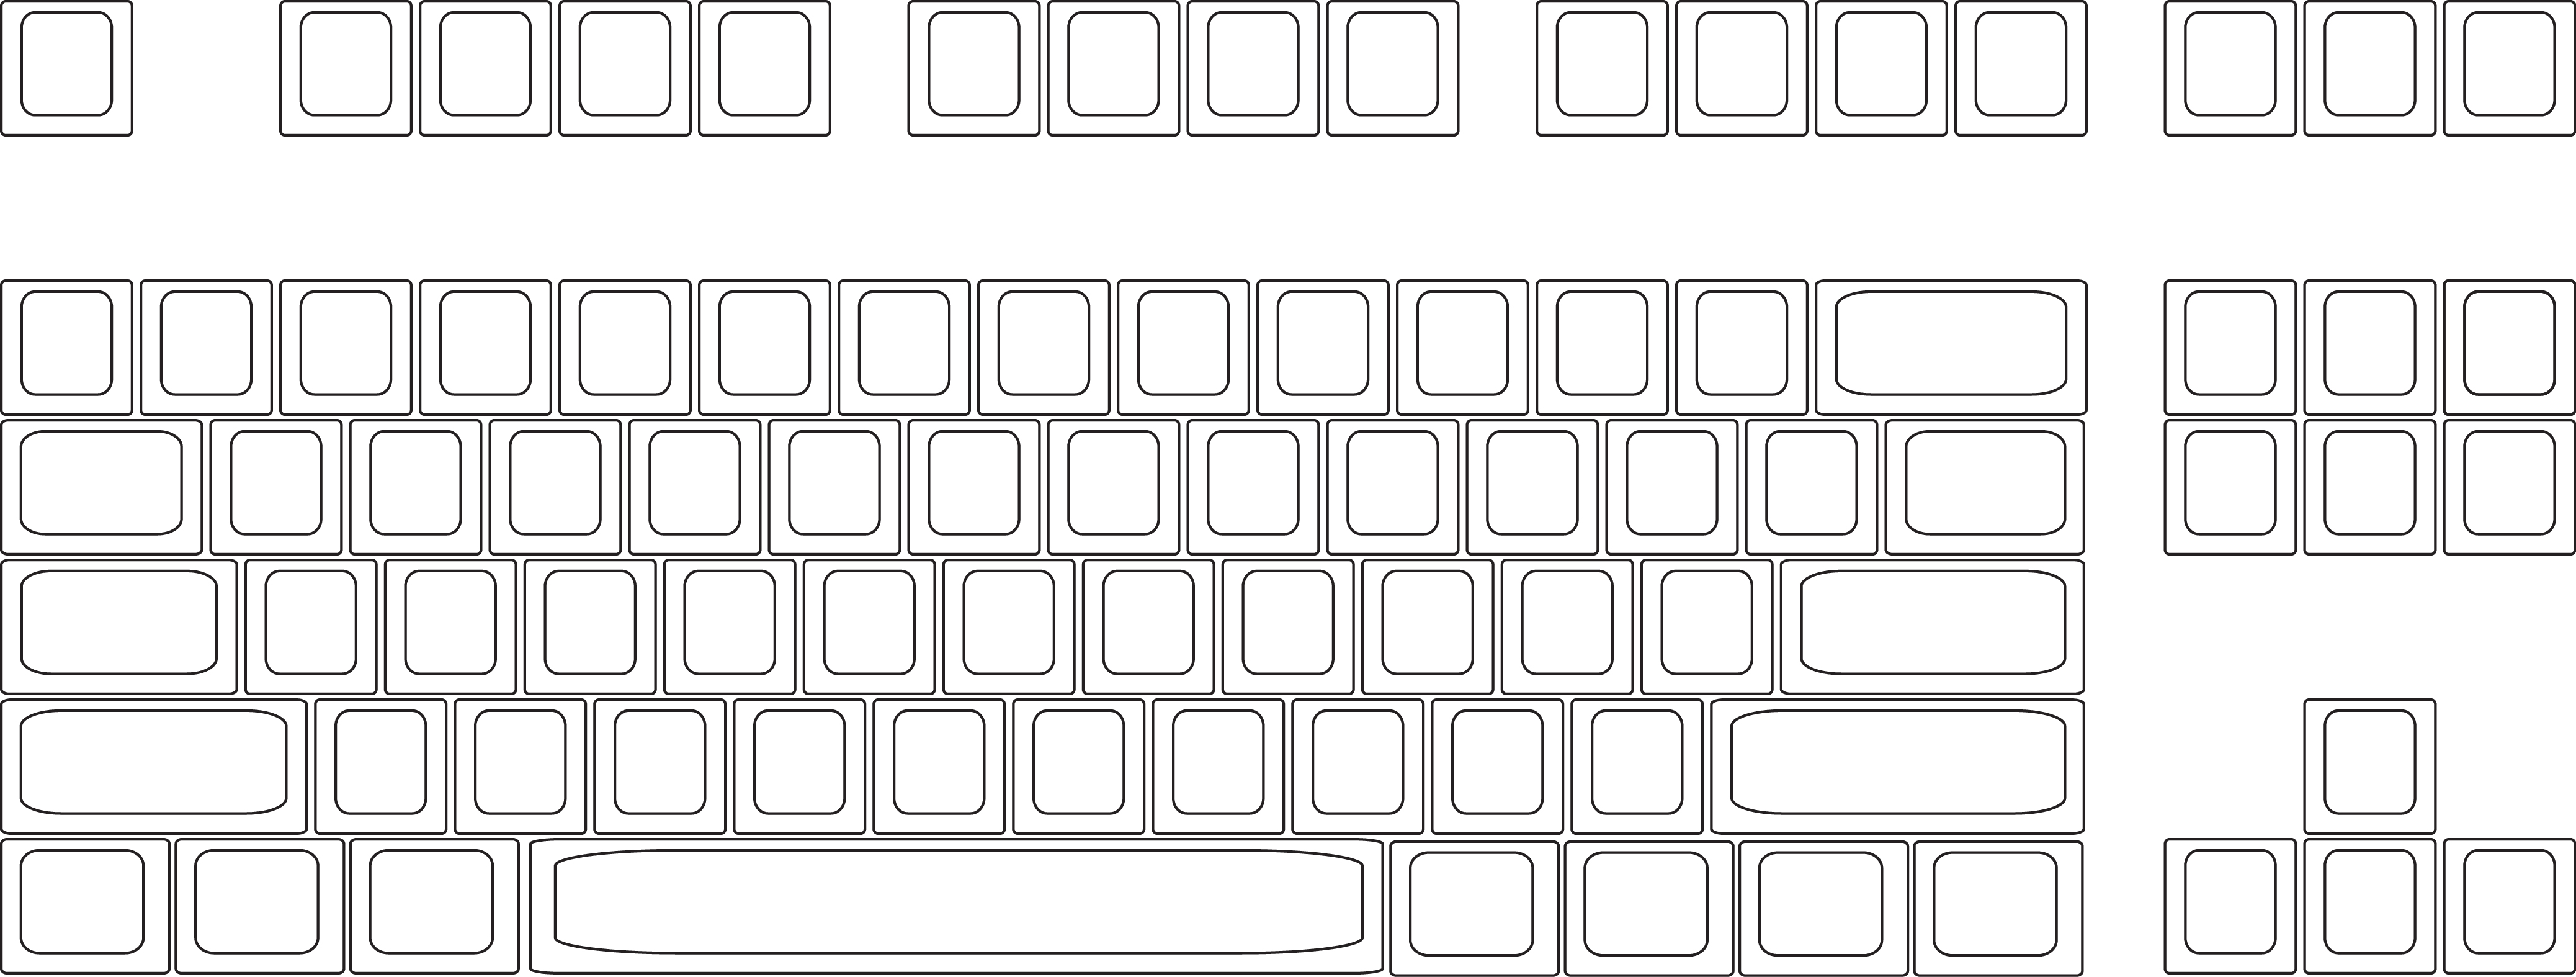 Keyboard Layout Worksheet